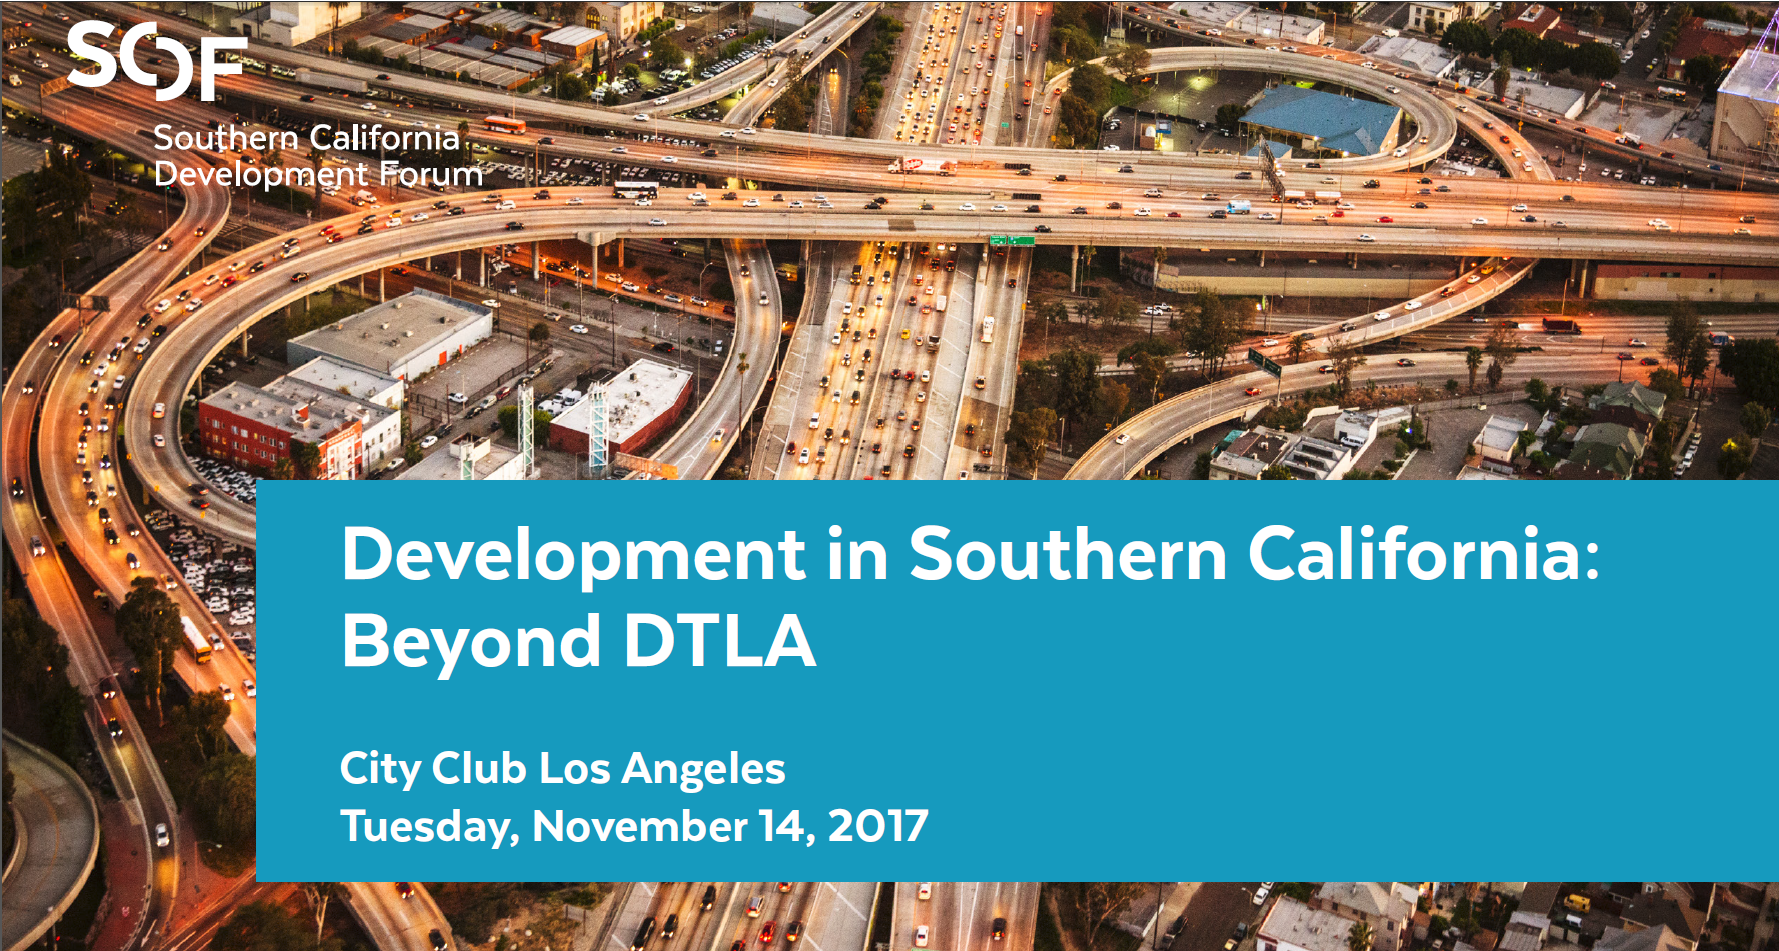 Development in Southern California: Beyond DTLA Tuesday, November 14, 2017